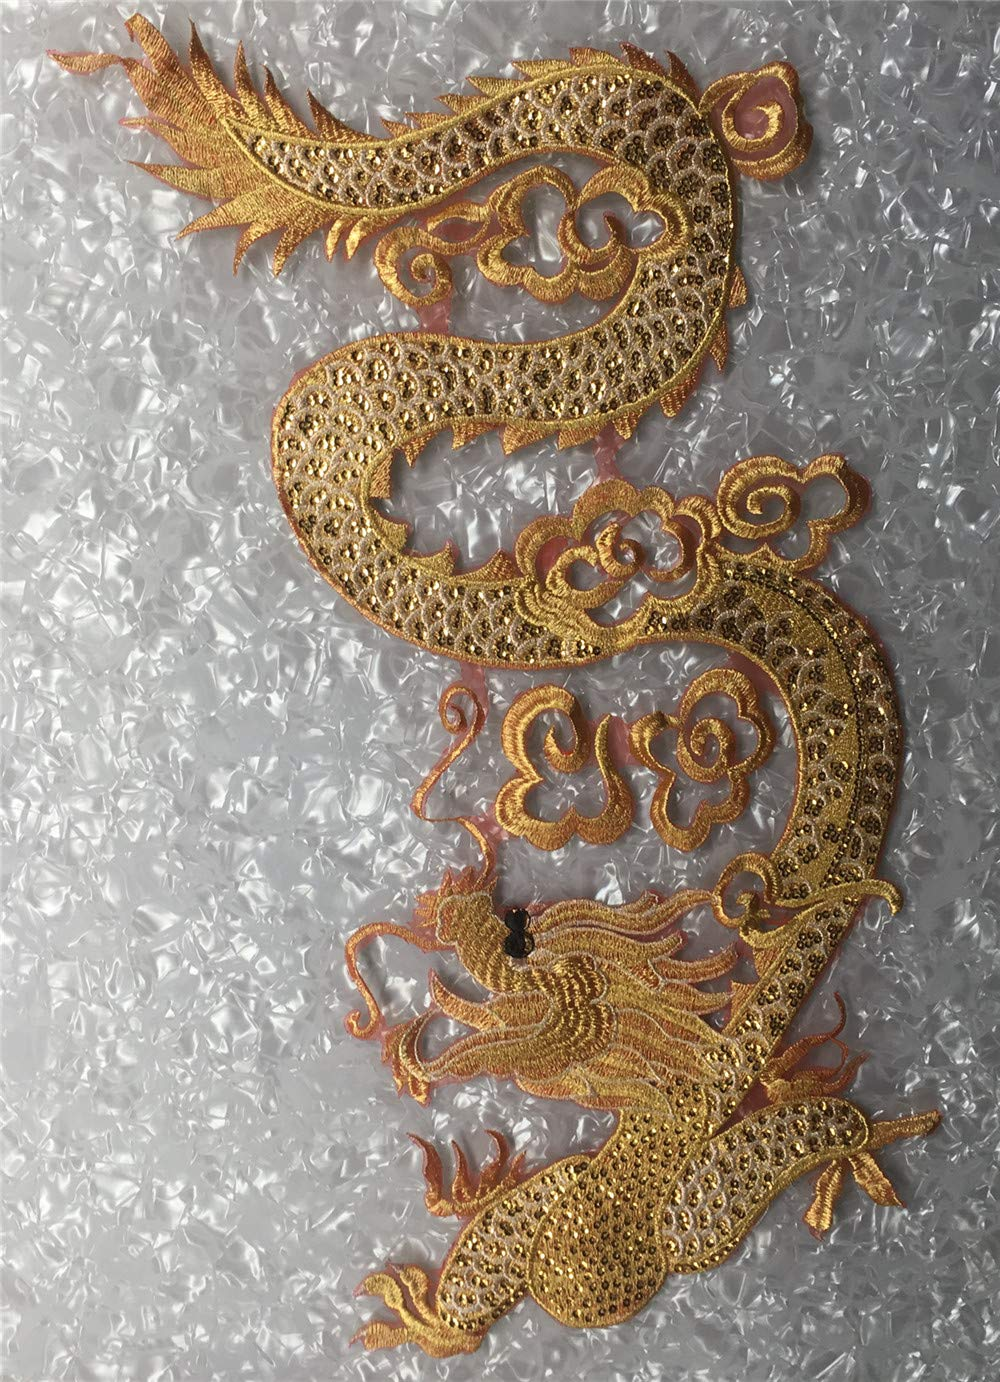 Large Dragon Gold Line Sequined Embroidery Patches Applique for Wedding Performing Clothes Evening Dress DIY Patches 68x26.5CM (Head for Left) by ROUND YUAN